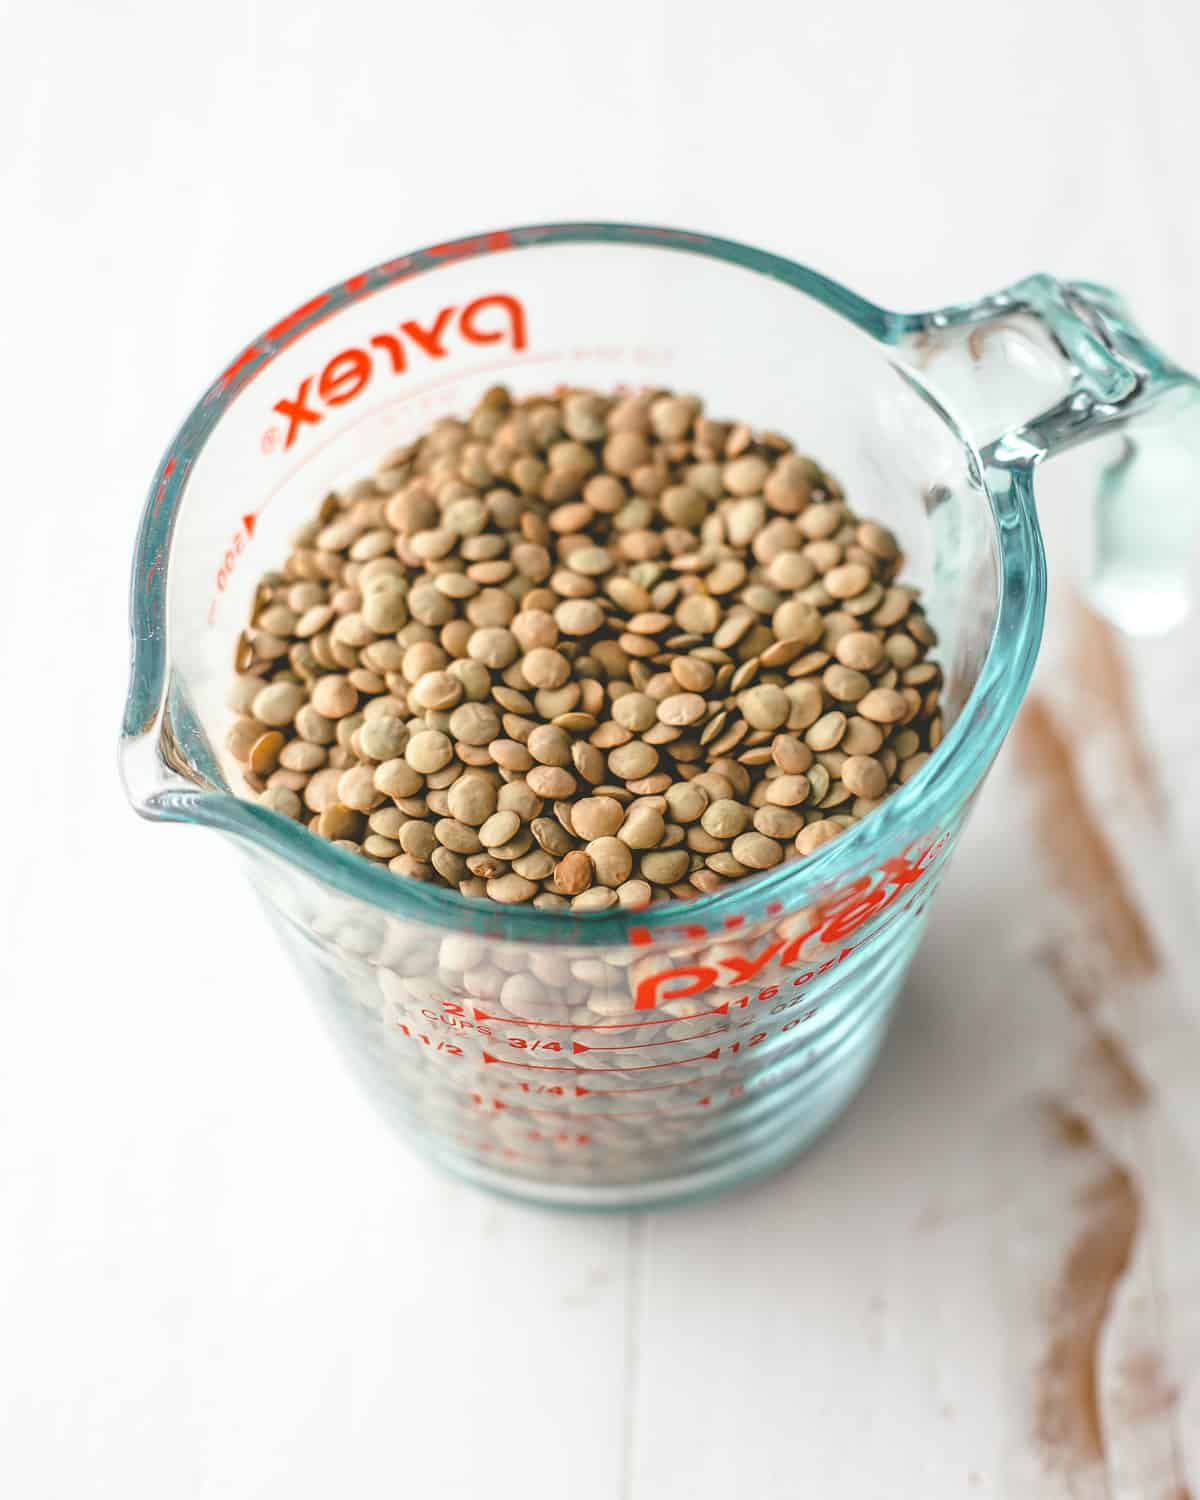 green lentils in a glass measuring cup